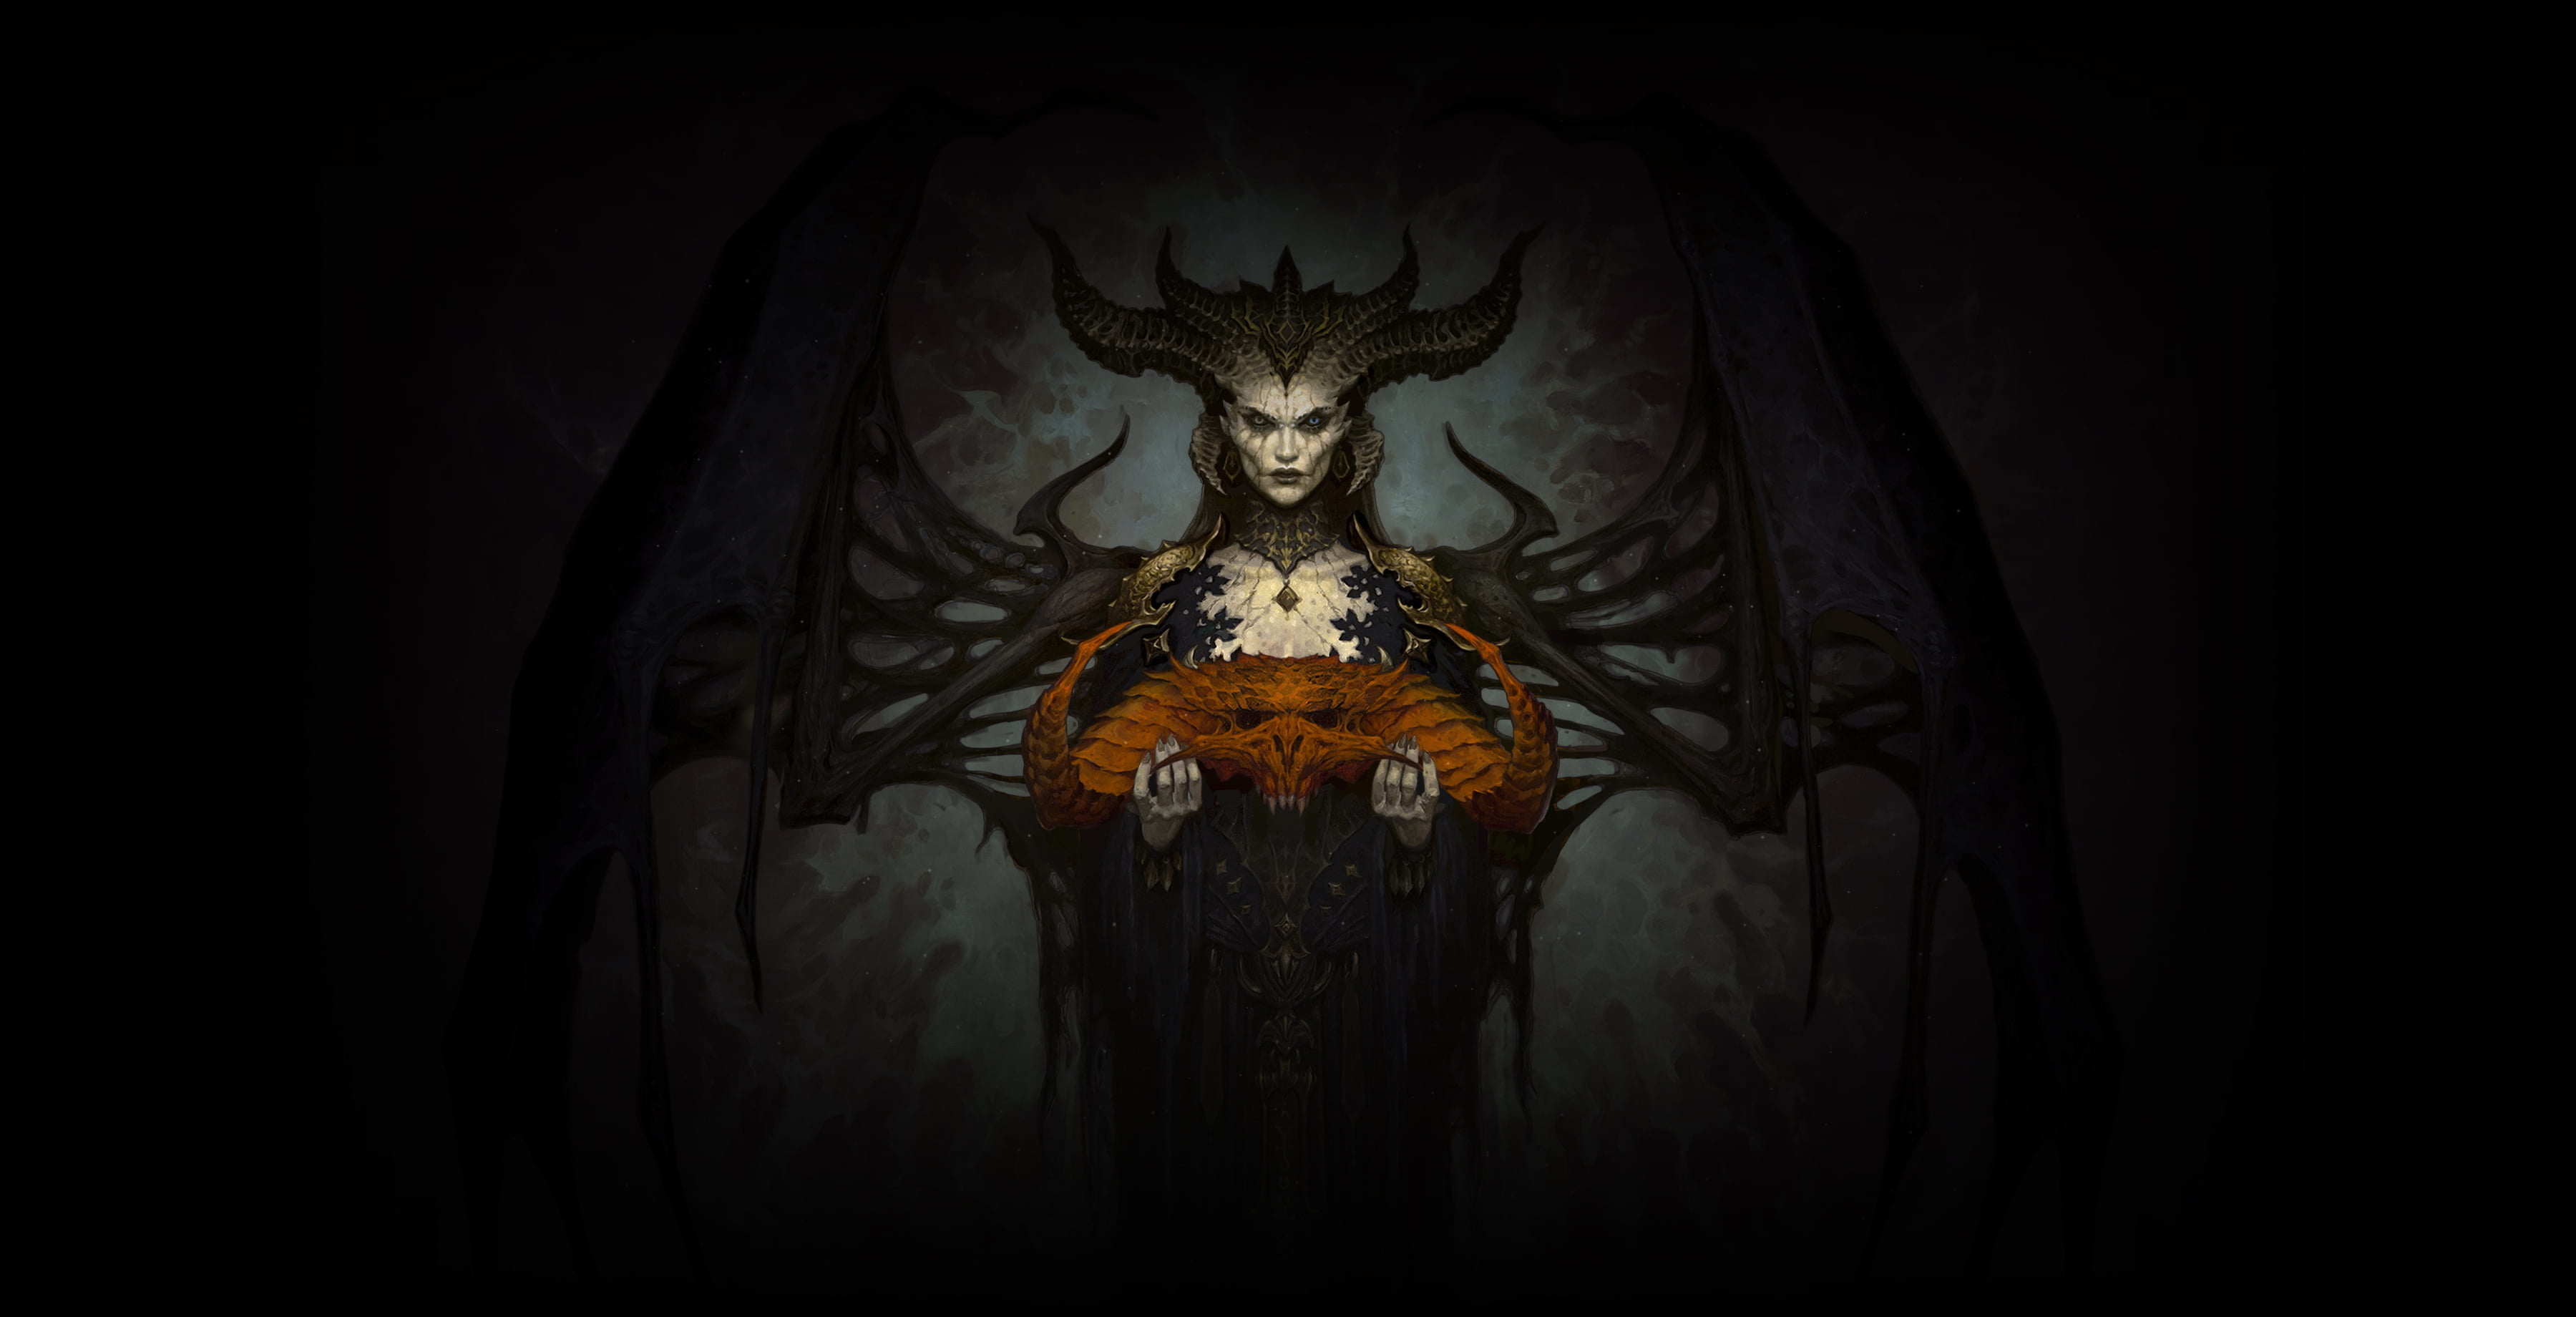 Lilith In Diablo 4 Wallpaper Hd Games 4k Wallpapers Images Photos And Background